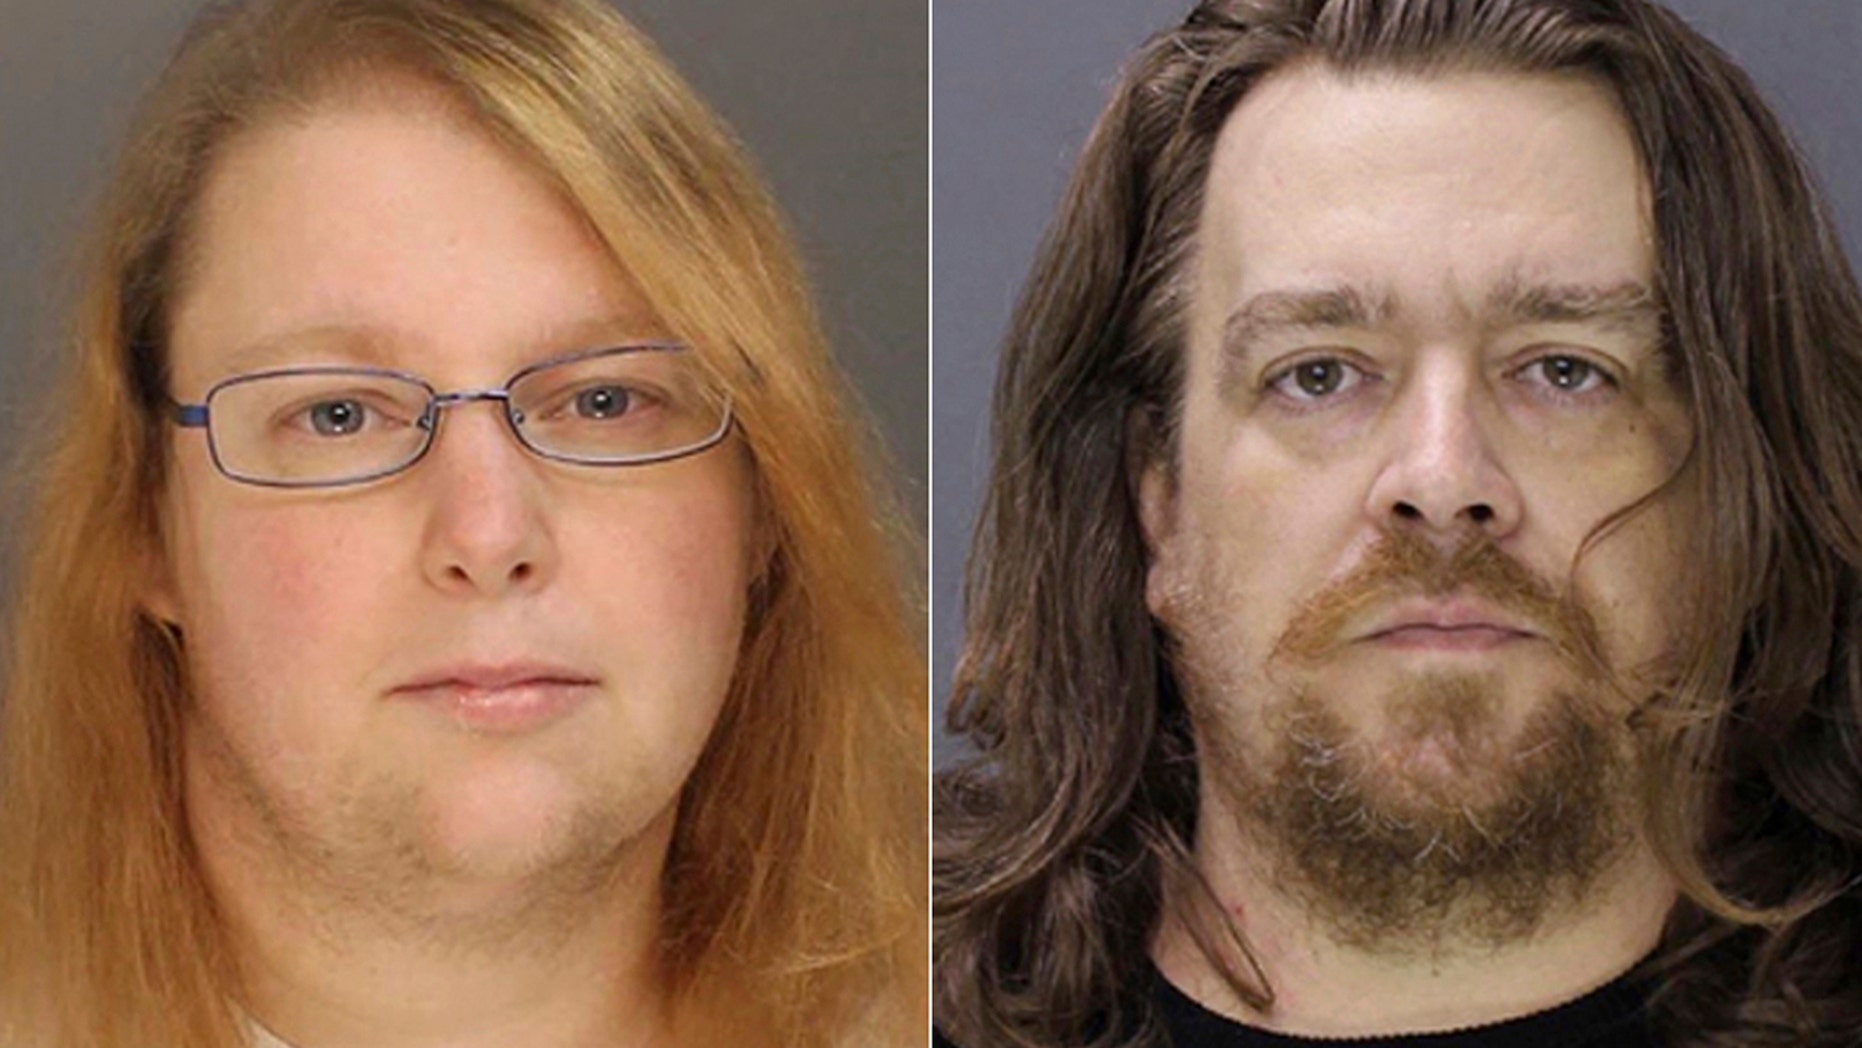 FILE - This combination of file photos provided on Sunday, Jan. 8, 2017, by the Bucks County District Attorney shows Sara Packer, left, and Jacob Sullivan. Sullivan pleaded guilty Tuesday, Feb. 19, 2019, to first-degree murder in the 2016 death of 14-year-old Grace Packer. (Bucks County District Attorney via AP, File)